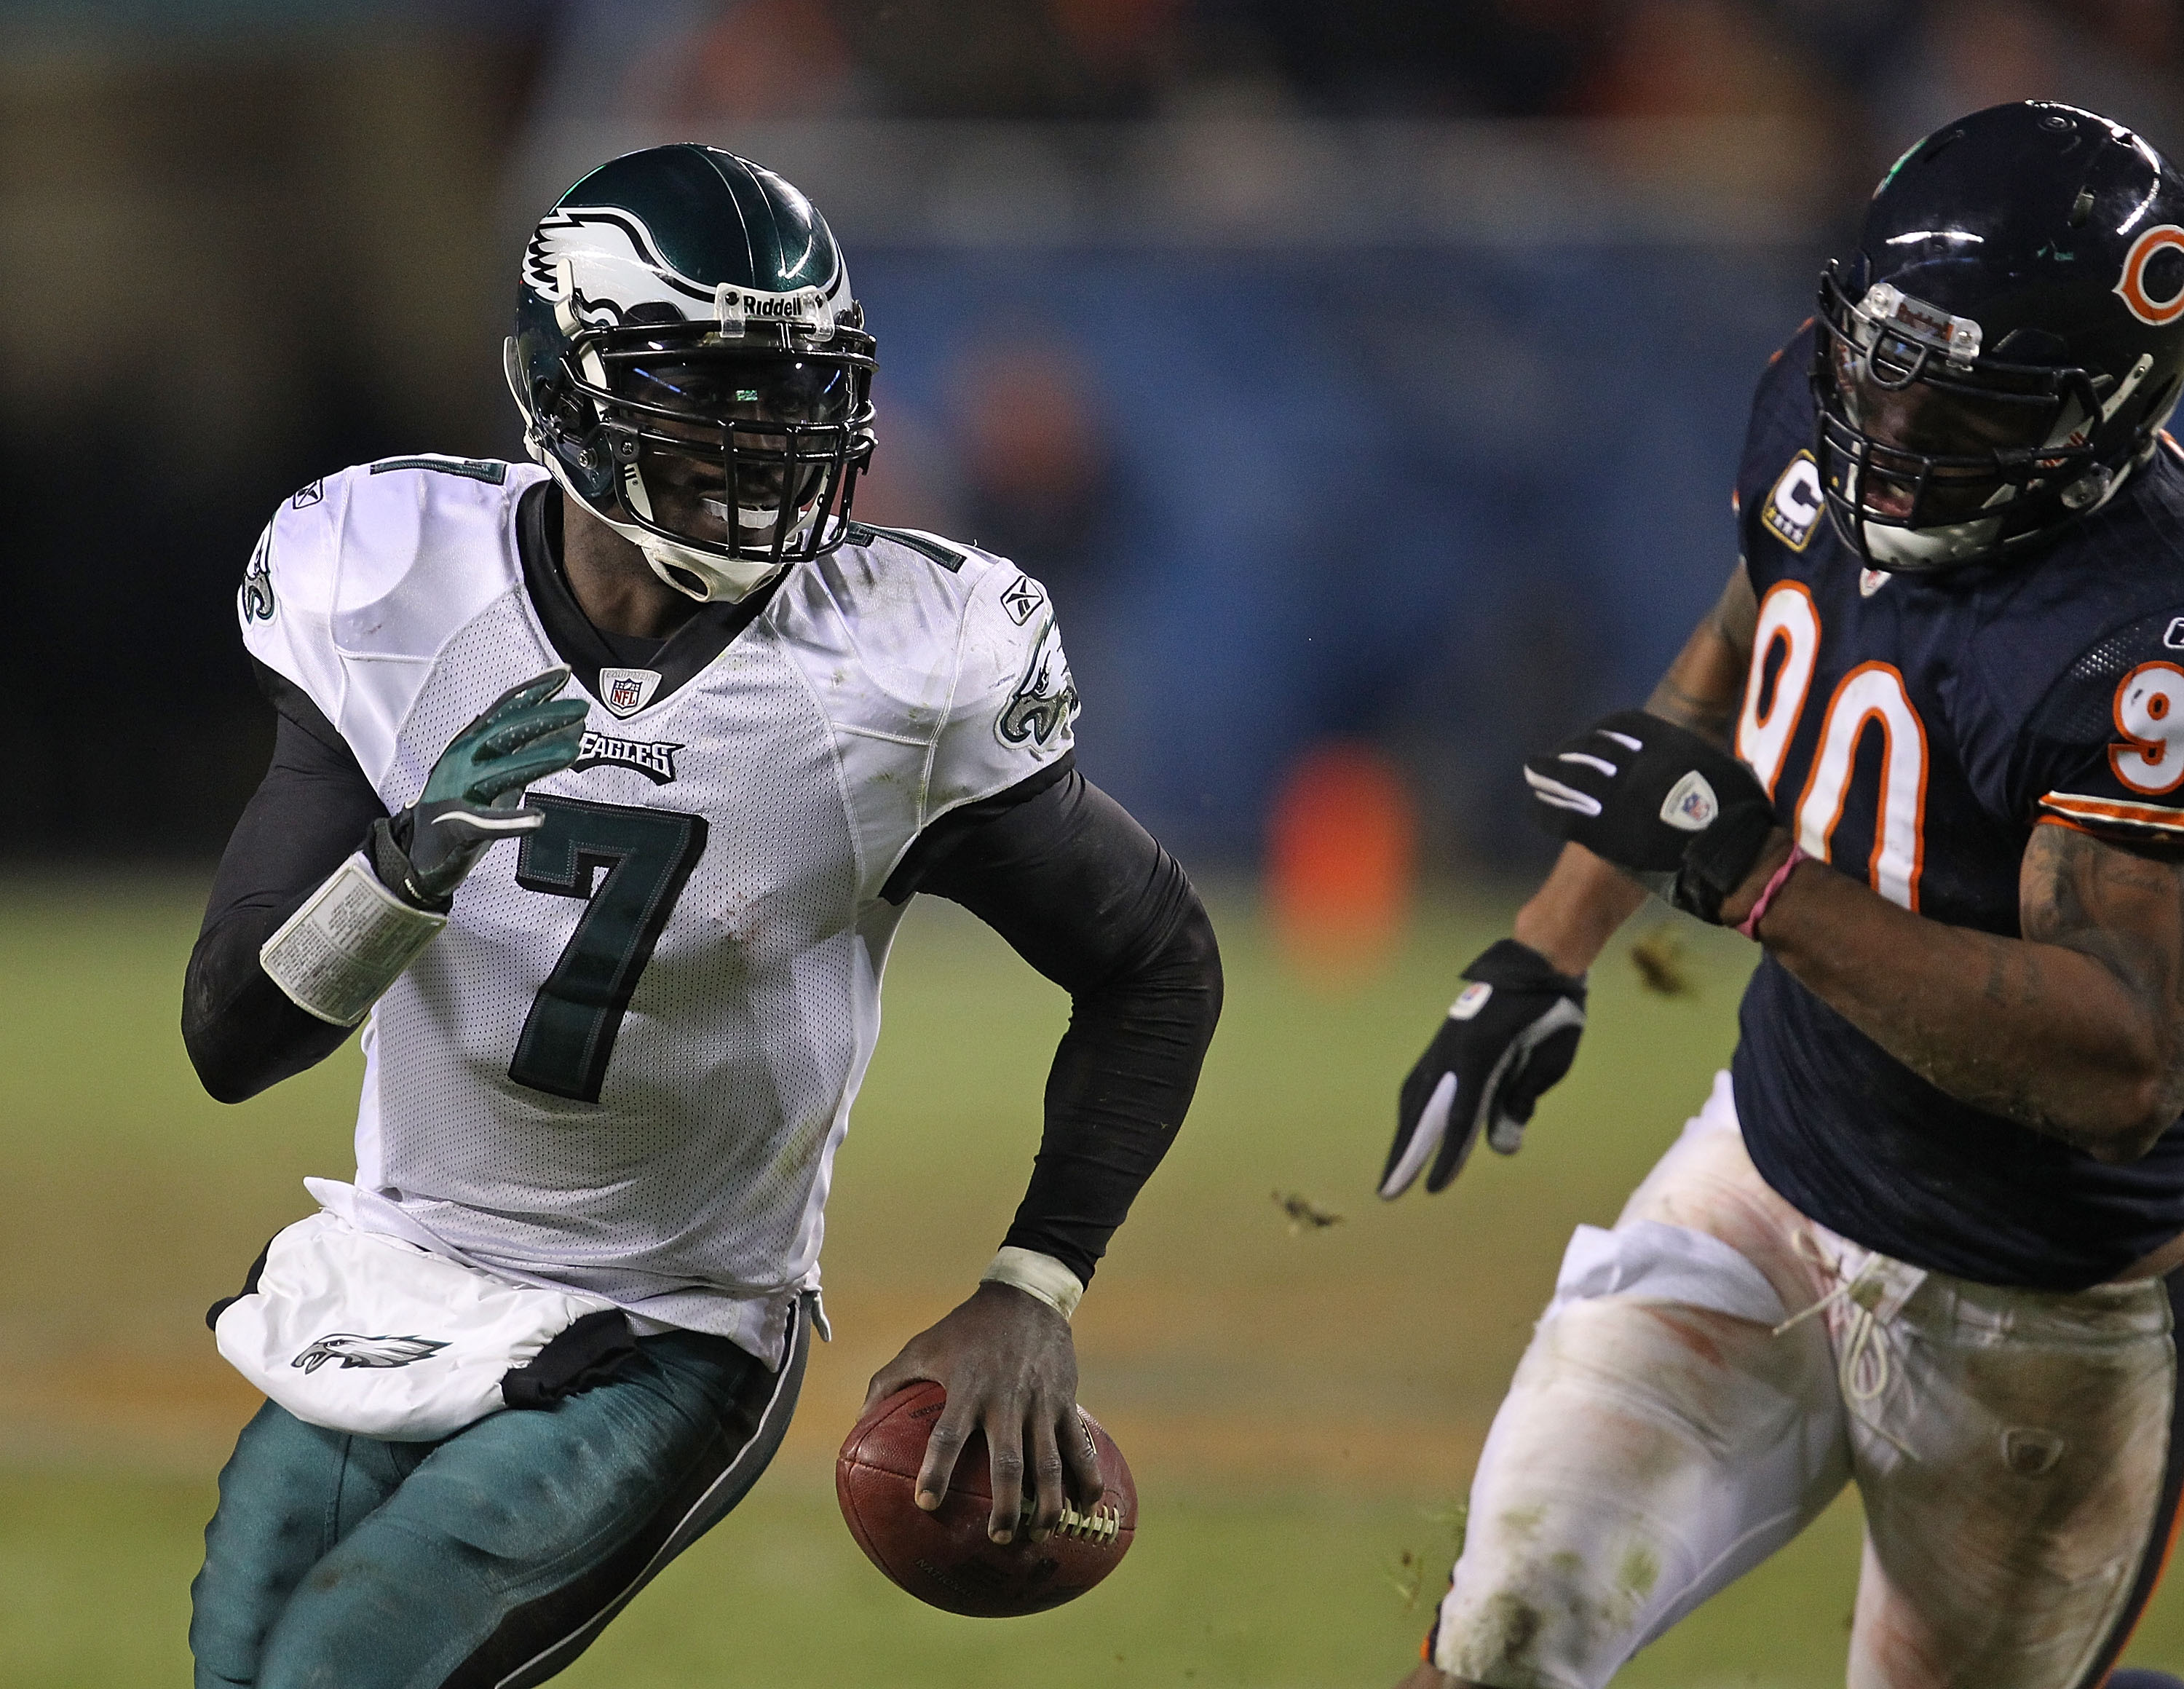 CHICAGO - NOVEMBER 28: Michael Vick #7 of the Philadelphia Eagles runs to avoid Julius Peppers #90 of the Chicago Bears at Soldier Field on November 28, 2010 in Chicago, Illinois. The Bears defeated the Eagles 31-26. (Photo by Jonathan Daniel/Getty Images